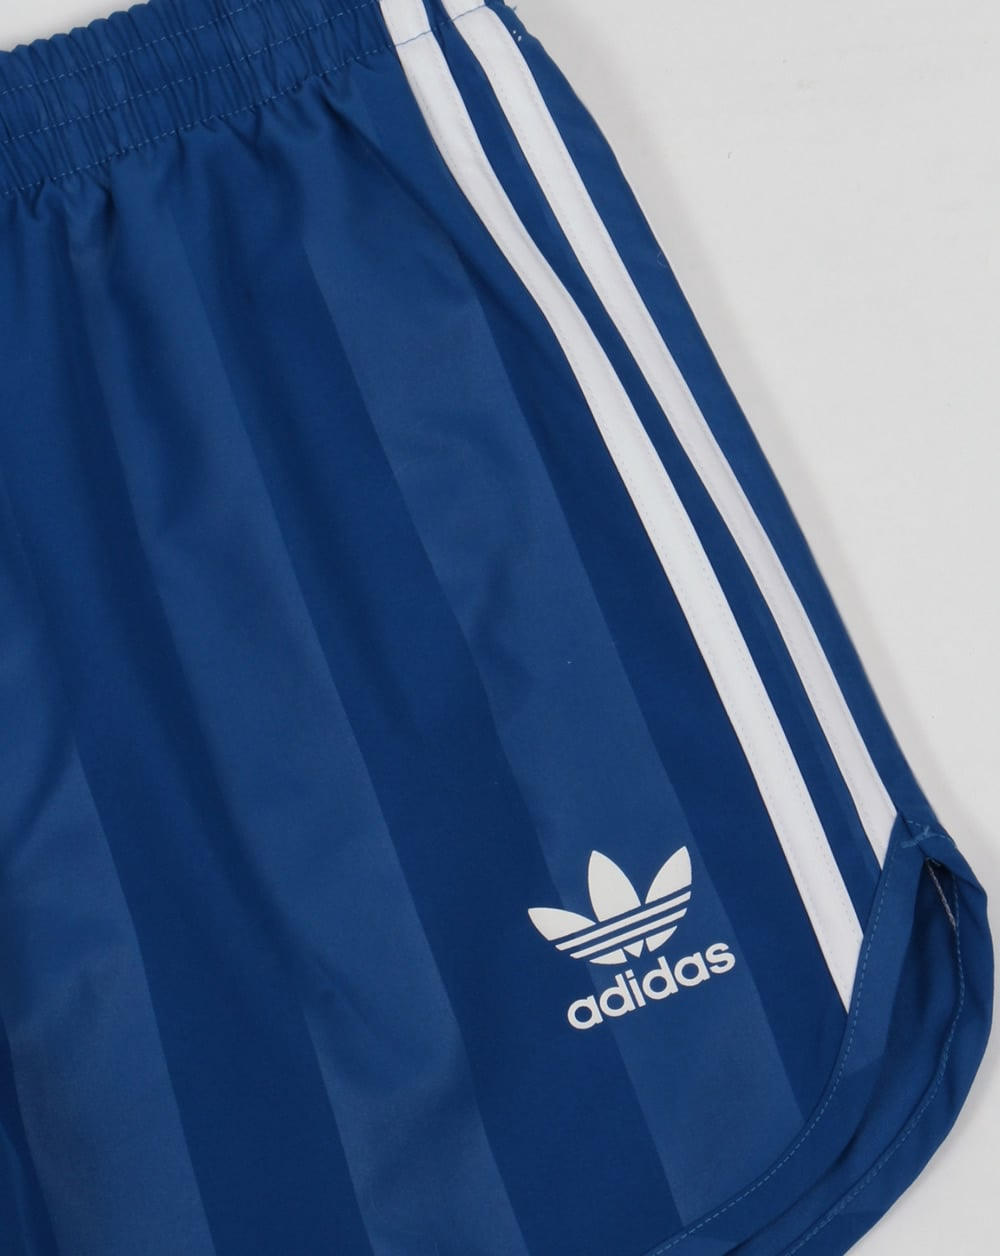 Adidas Originals Originals Top Ten Low Sneaker In Black: Adidas Originals Football Shorts Royal Blue